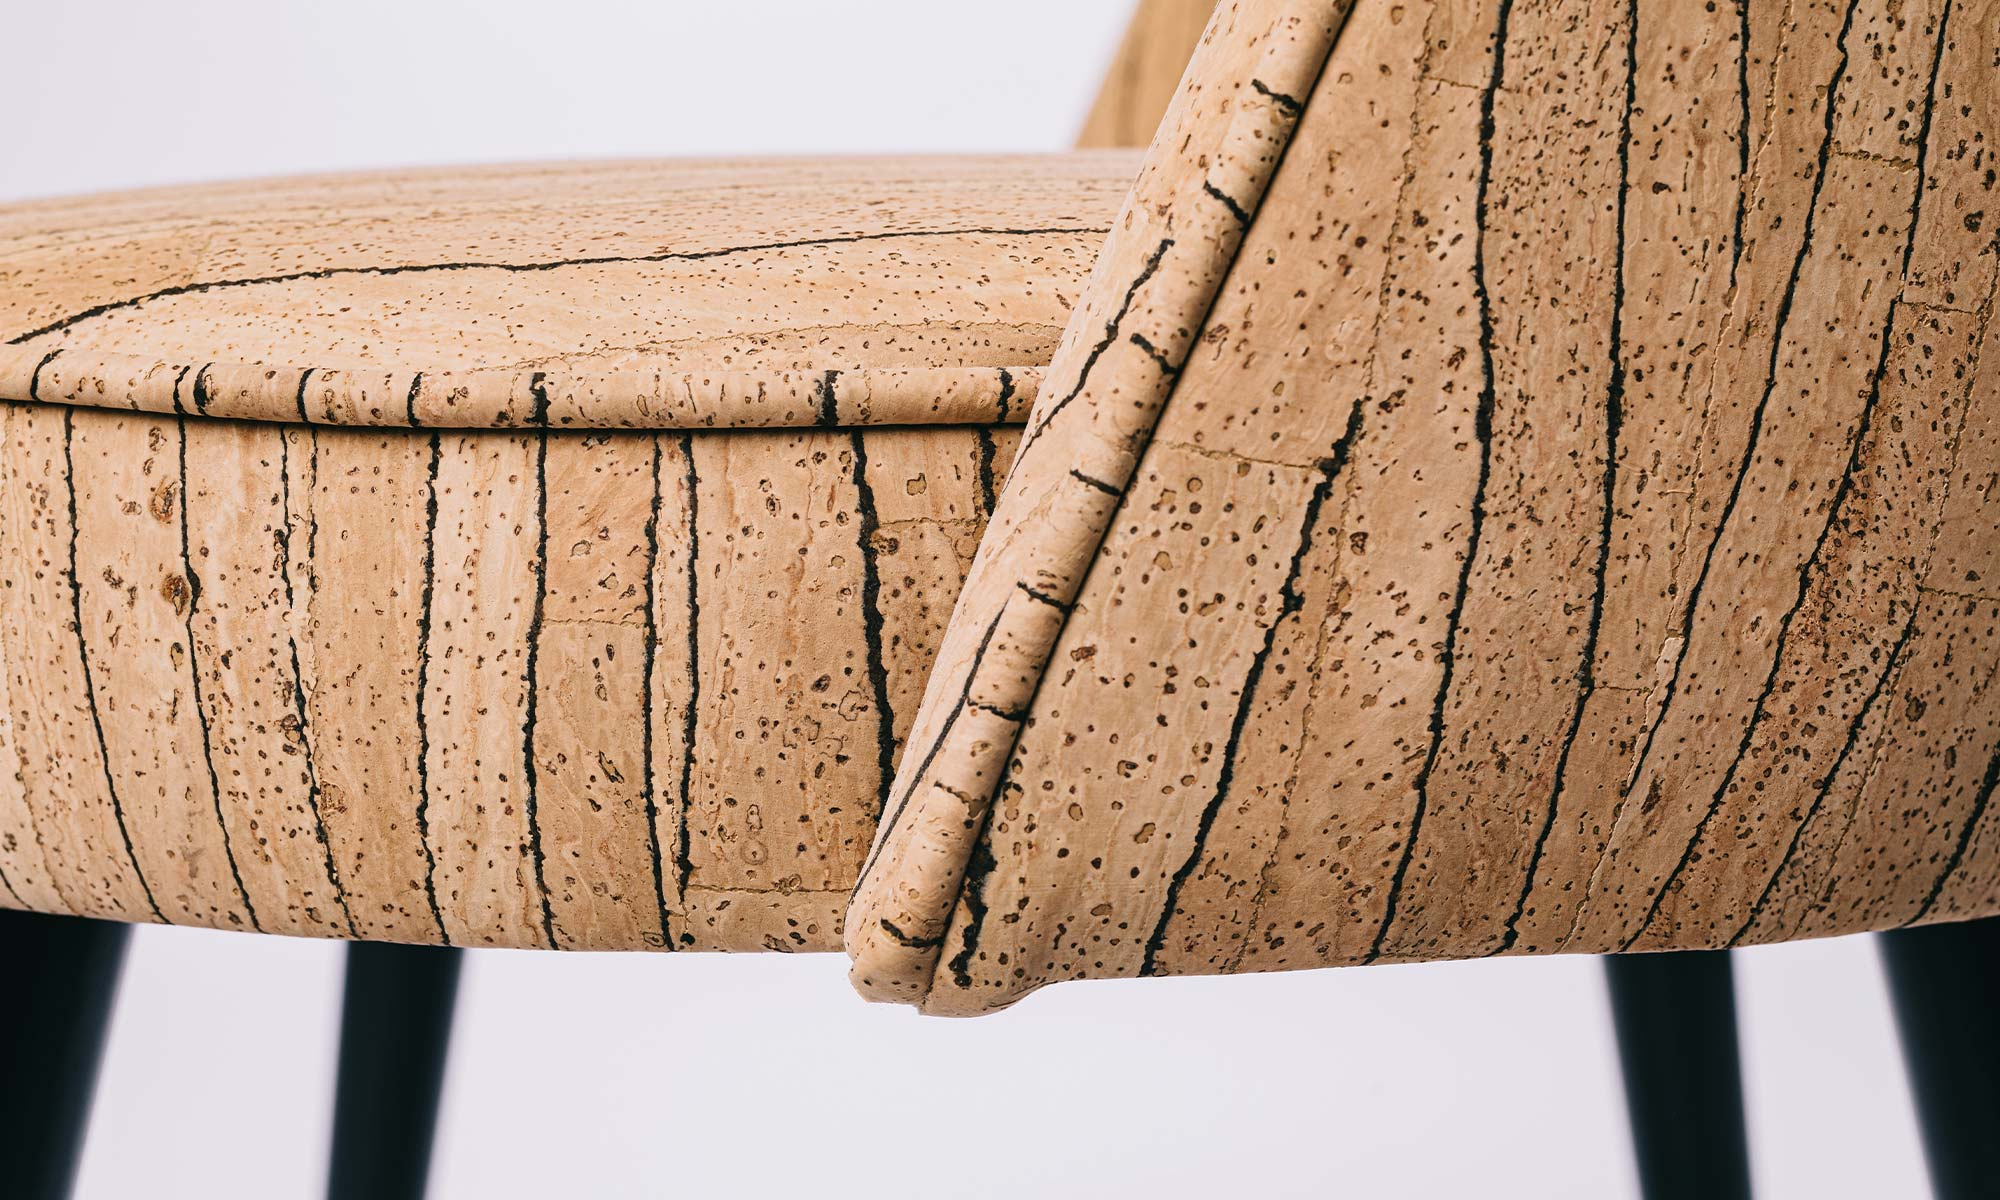 chair made from the sustainble material: cork